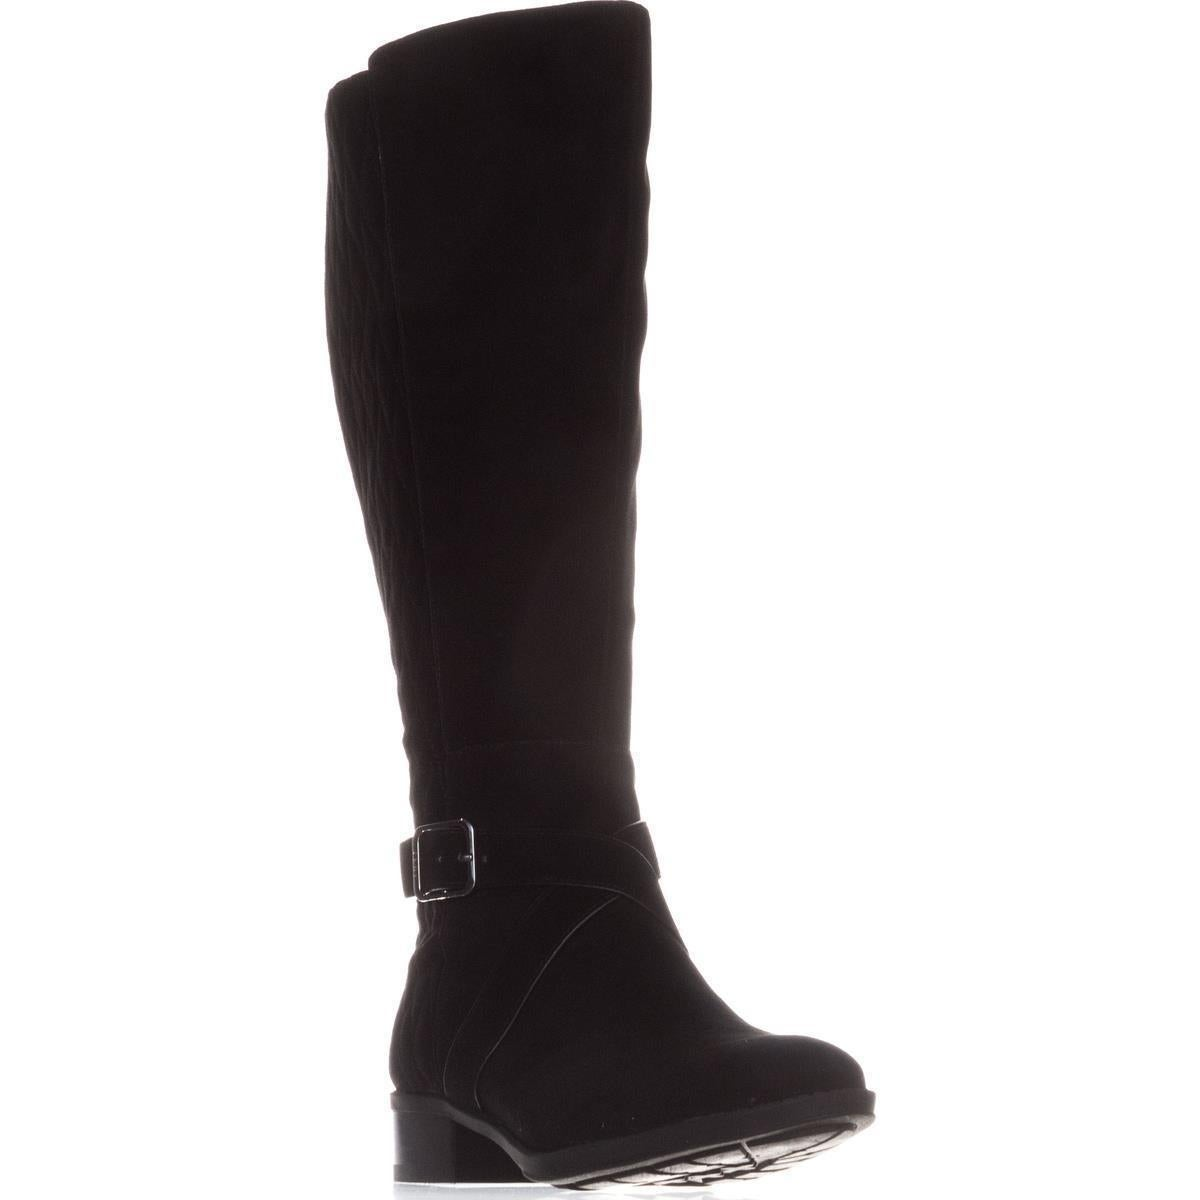 3c32a7fe3c9 Shop DKNY Mattie Flat Knee-High Boots, Black Suede - On Sale - Free  Shipping Today - Overstock - 19218612